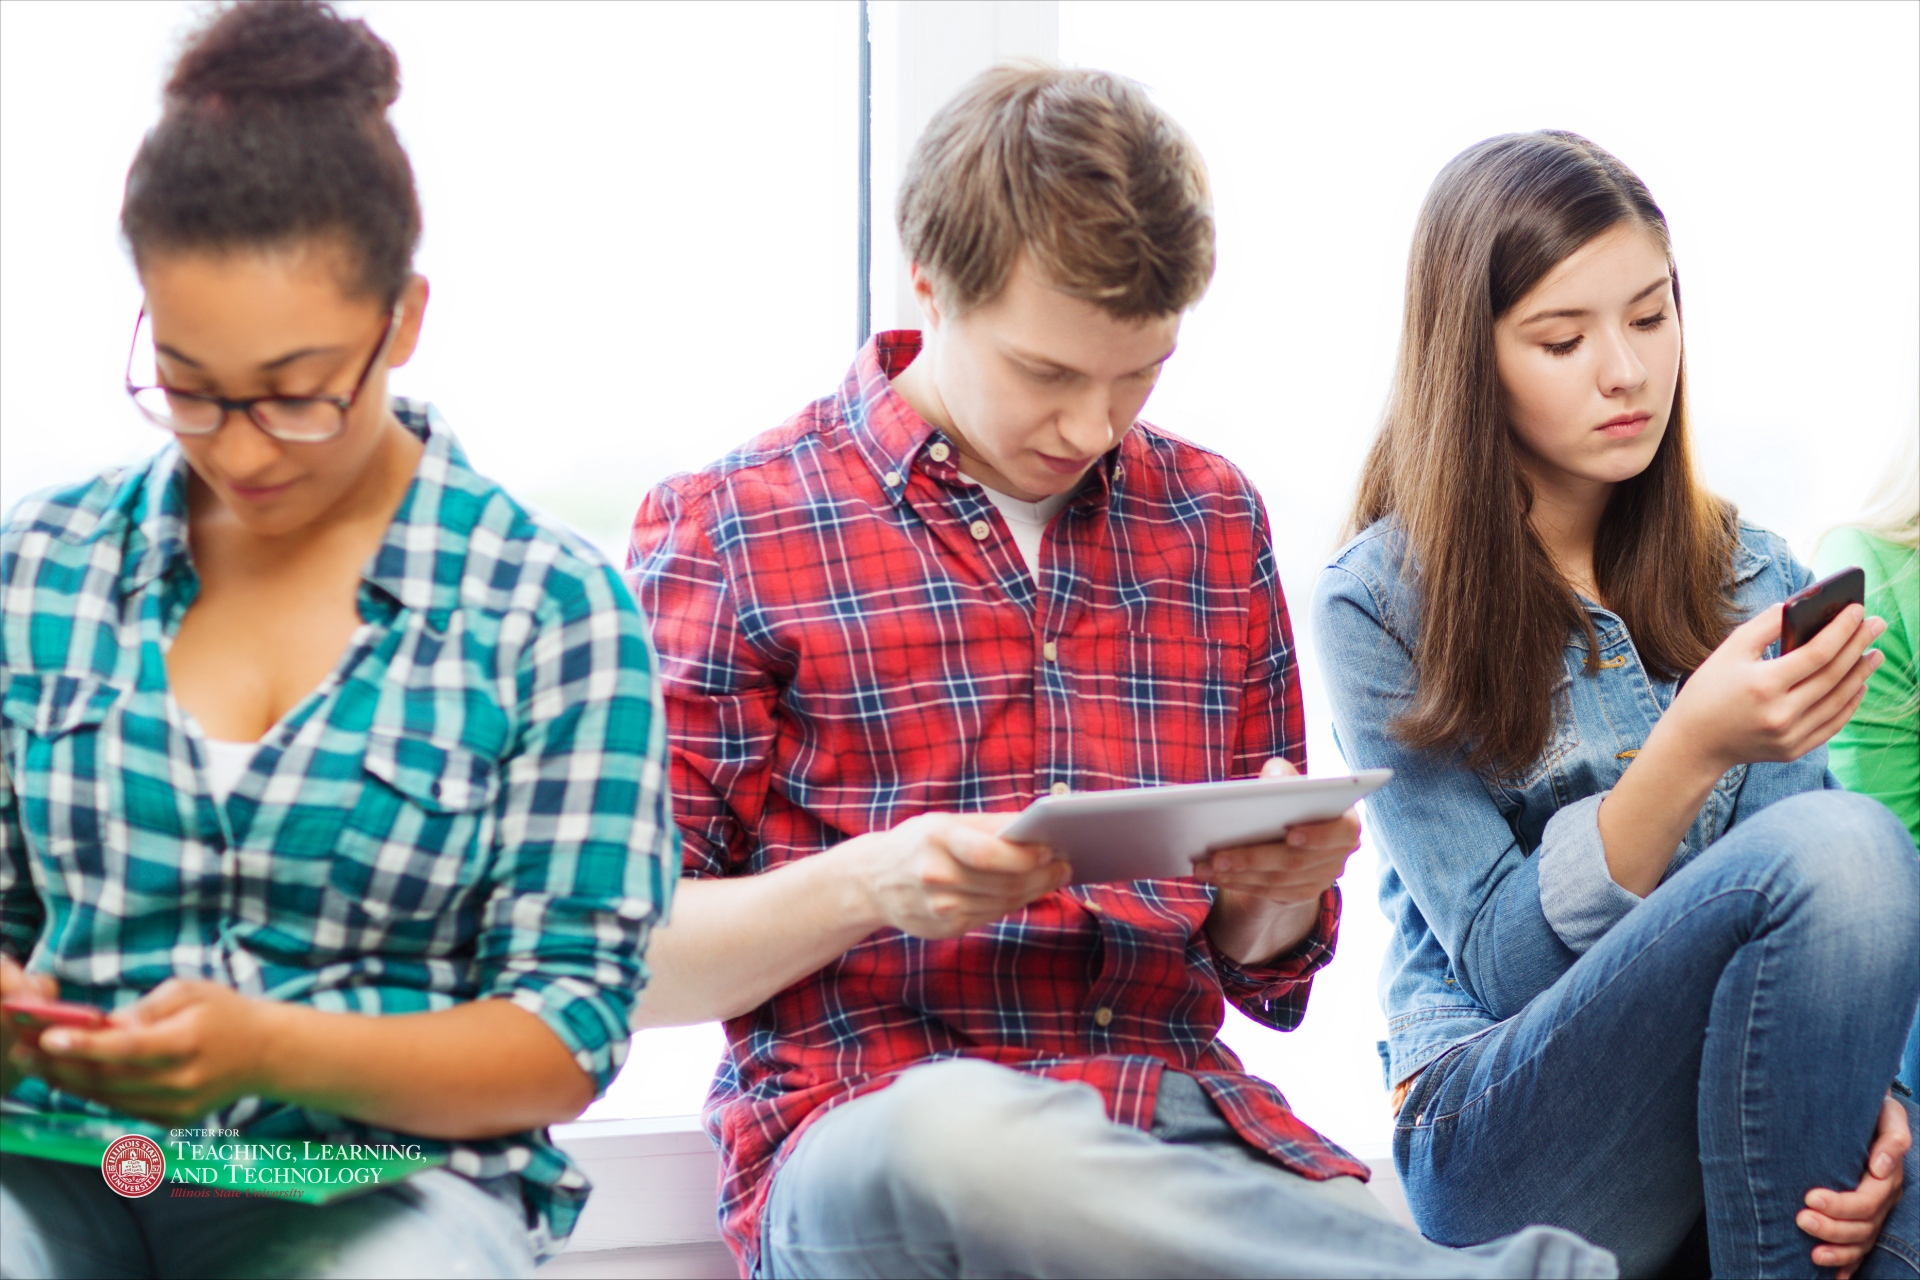 students on mobile devices